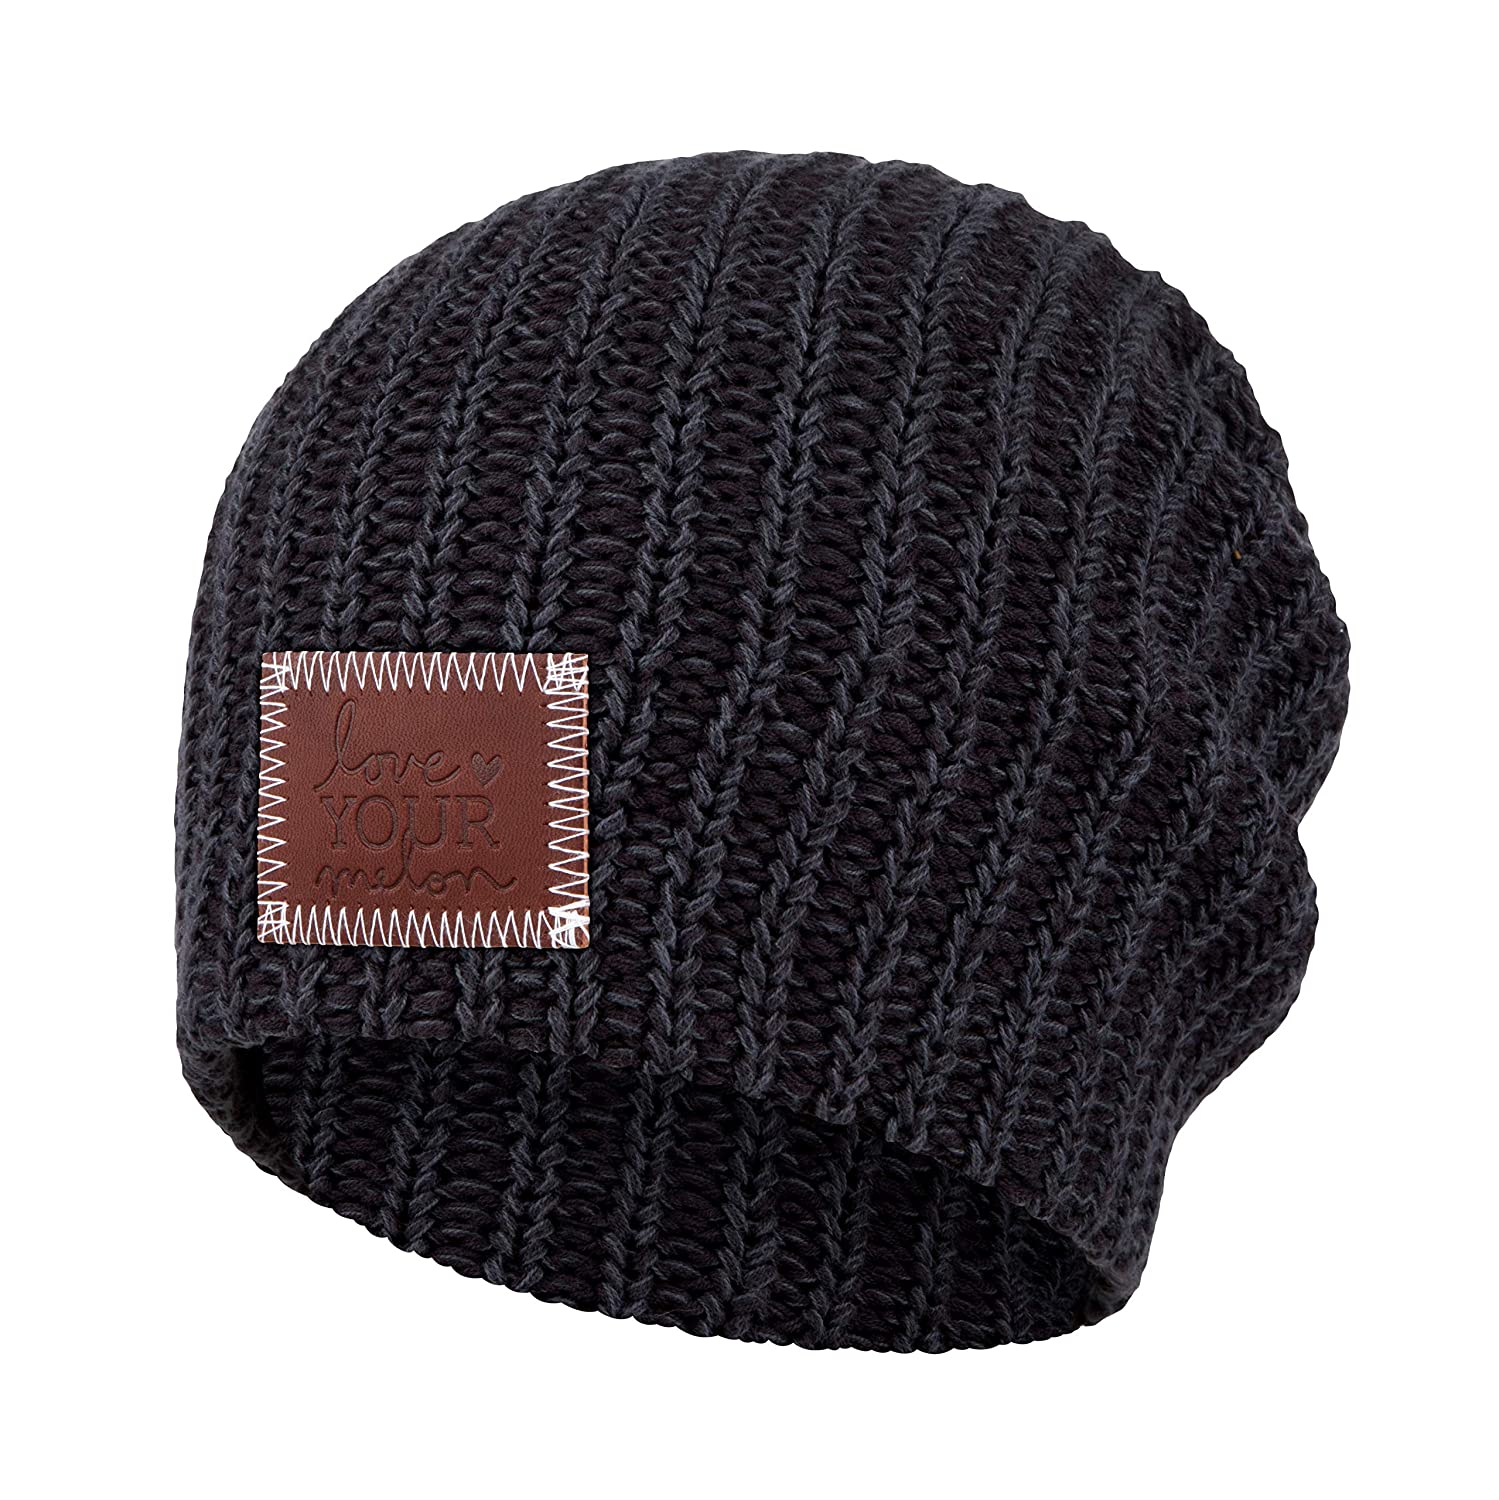 Love Your Melon Beanie Love Your Melon Black Beanie BEA096